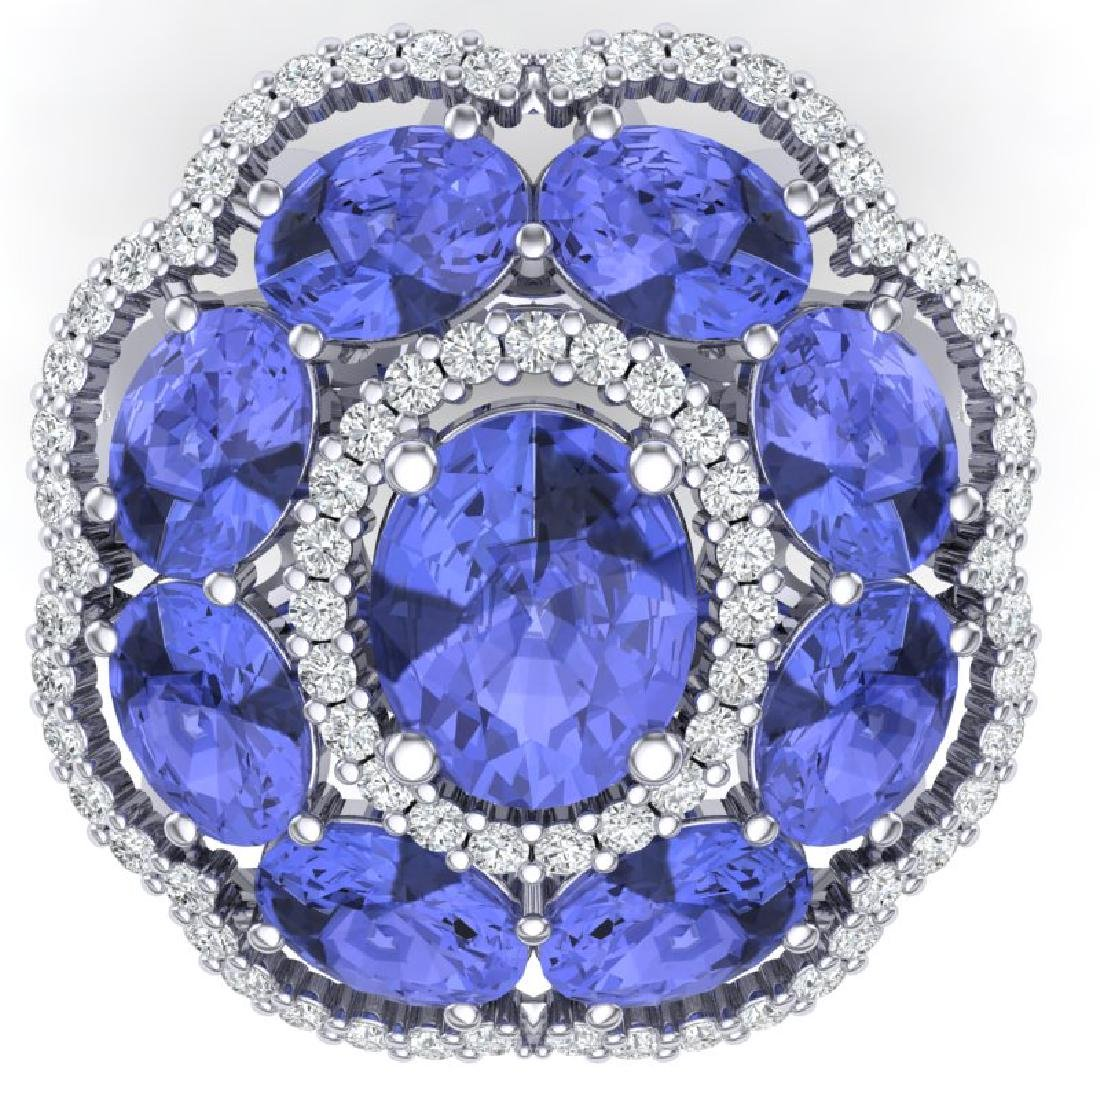 15.24 CTW Royalty Tanzanite & VS Diamond Ring 18K White - 2